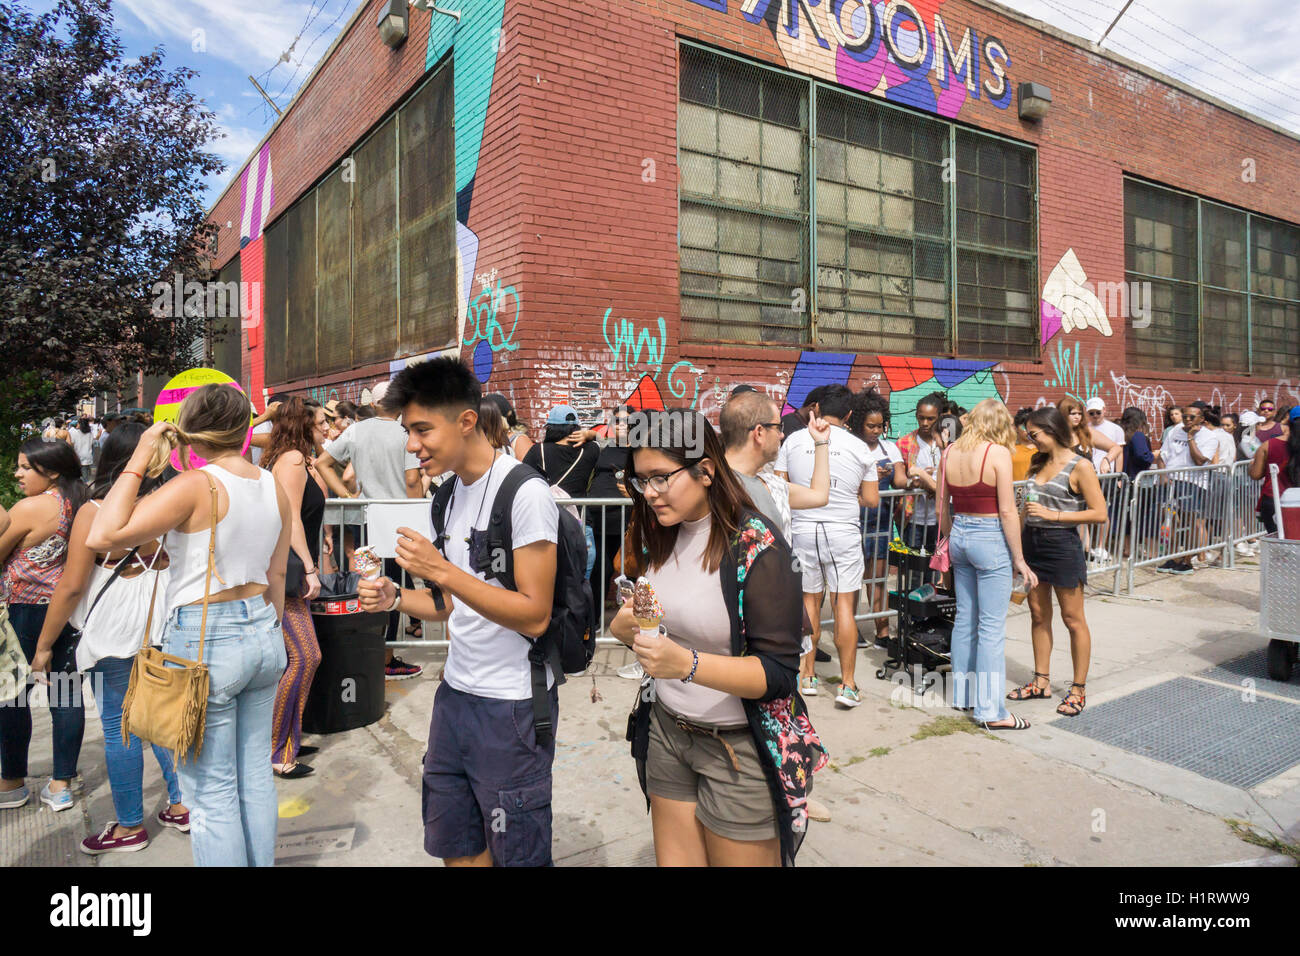 Thousands of millennials descend on the Bushwick neighborhood of Brooklyn to take in the experiential 29 Rooms installation on Sunday, September 11, 2016. The exhibit by the women's lifestyle website Refinery29 is a social media spectacle with art and culture themed rooms designed with selfies in mind. The installation was wildly popular, in part due to the social media aspect, so popular that the line was cut off at noon, hours before the last entry. (© Richard B. Levine) Stock Photo